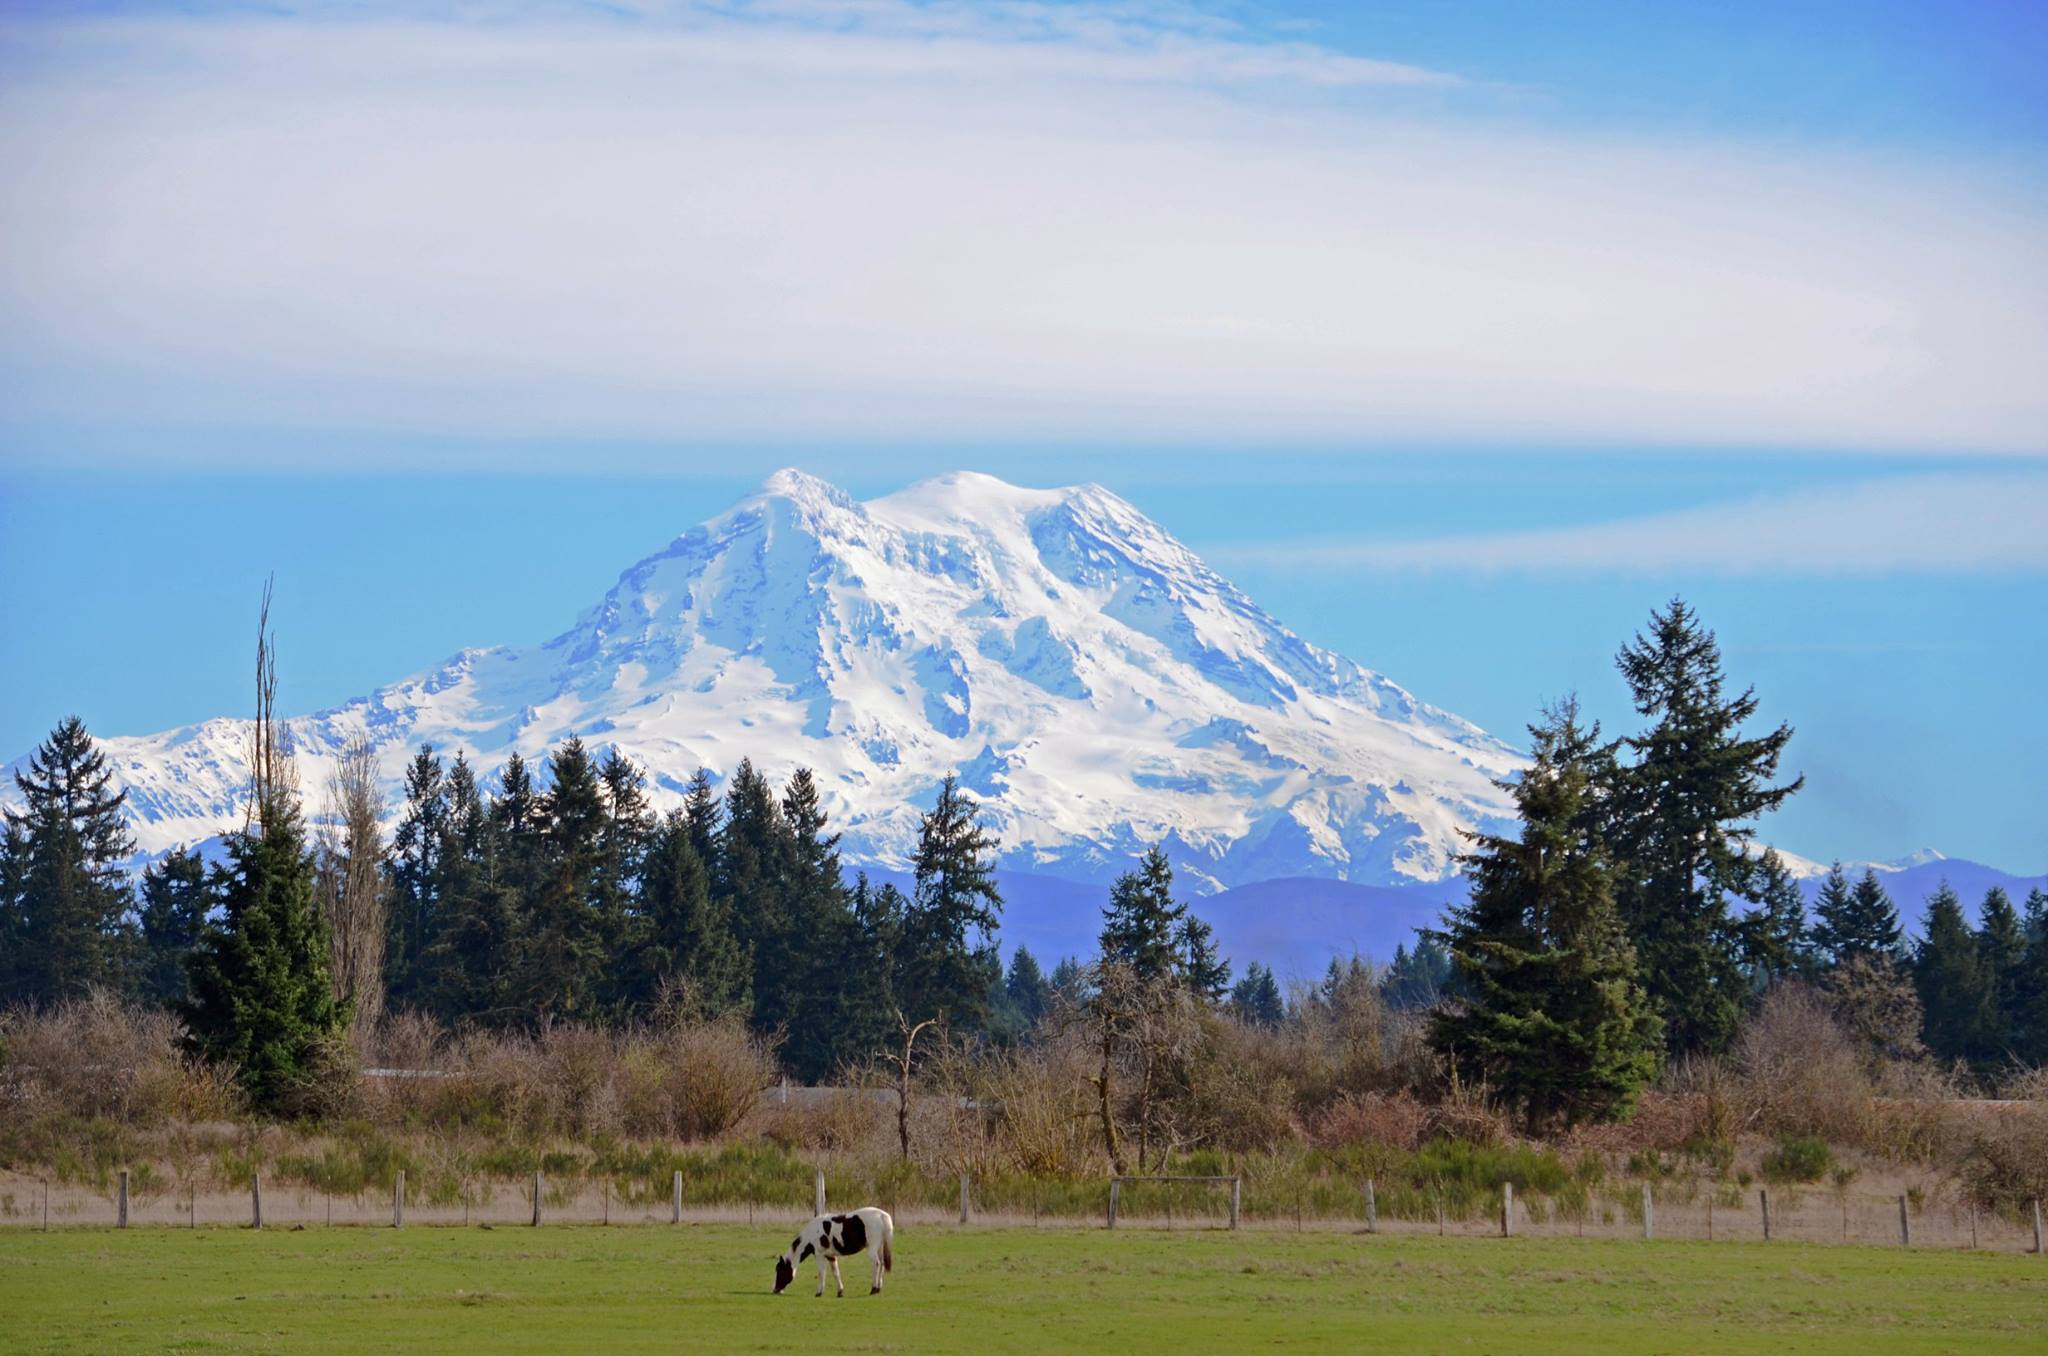 Mount Rainier as seen from Yelm on a sunny day in February.